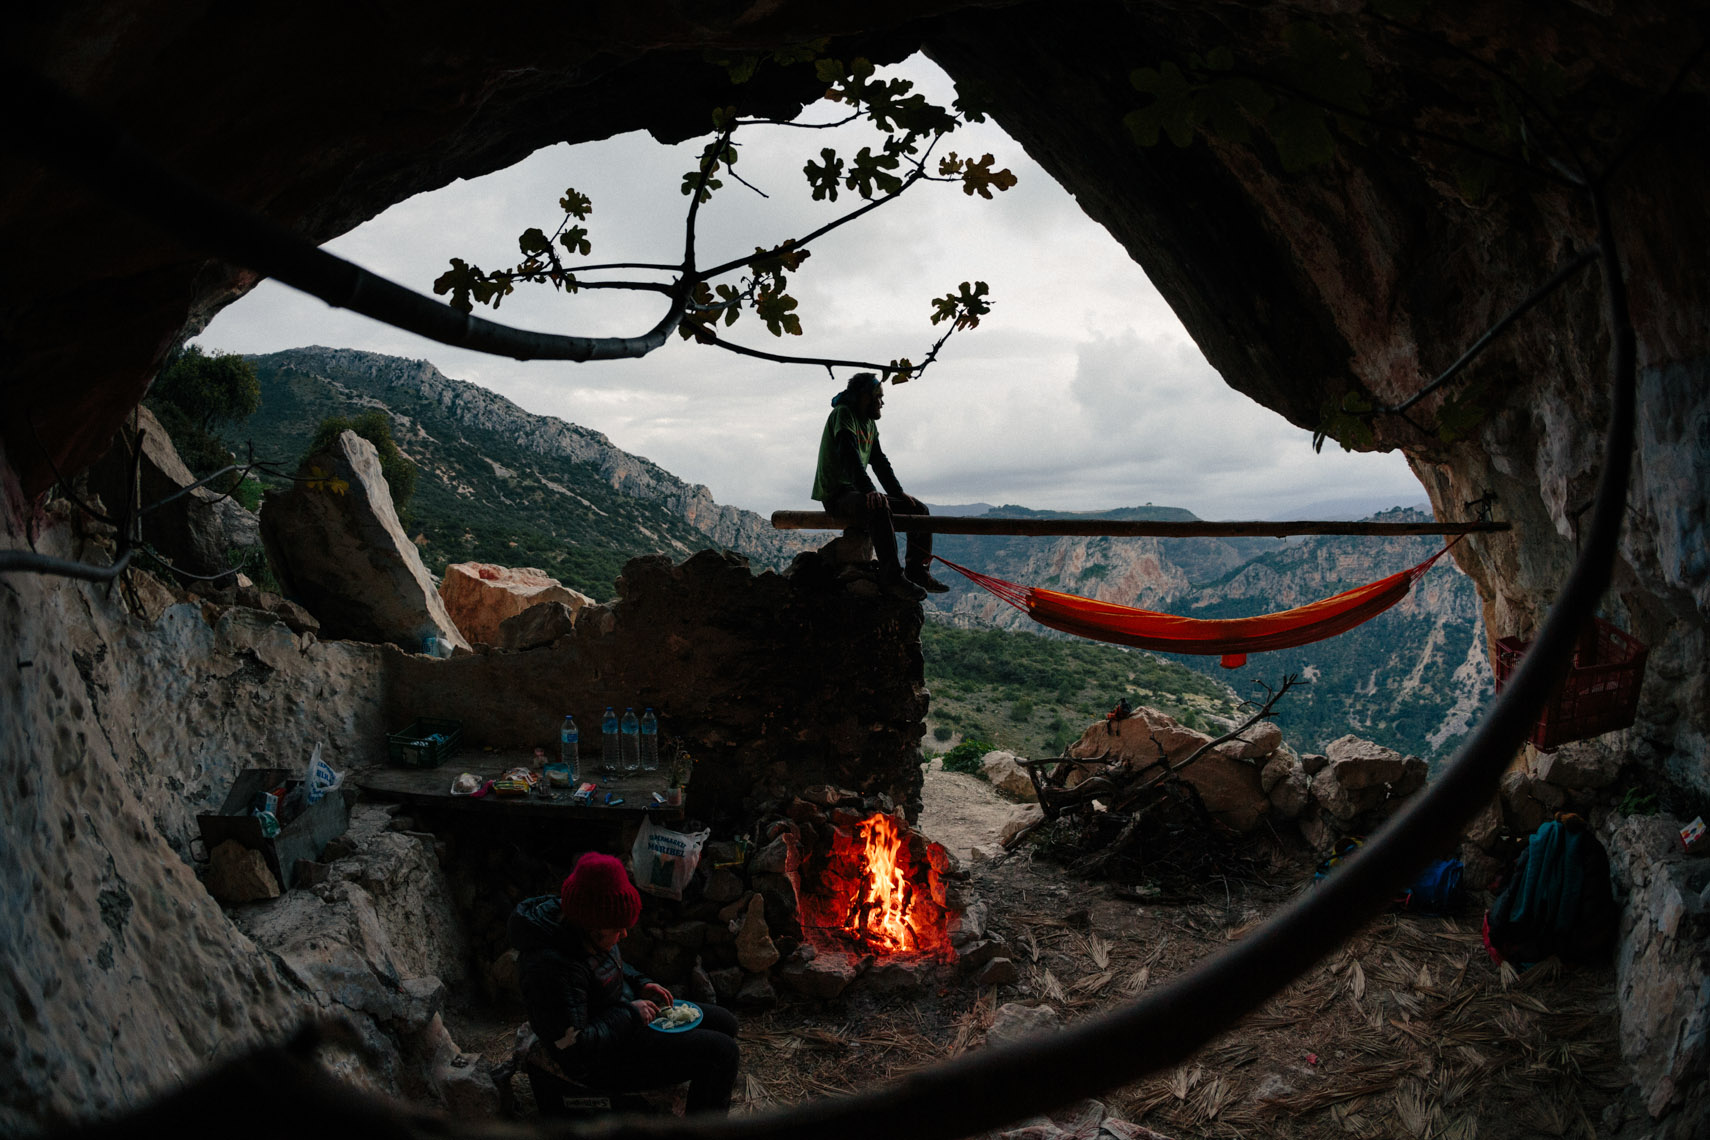 Adventure and outdoor lifestyle photogaph by Forest Woodward in El Choro Spain